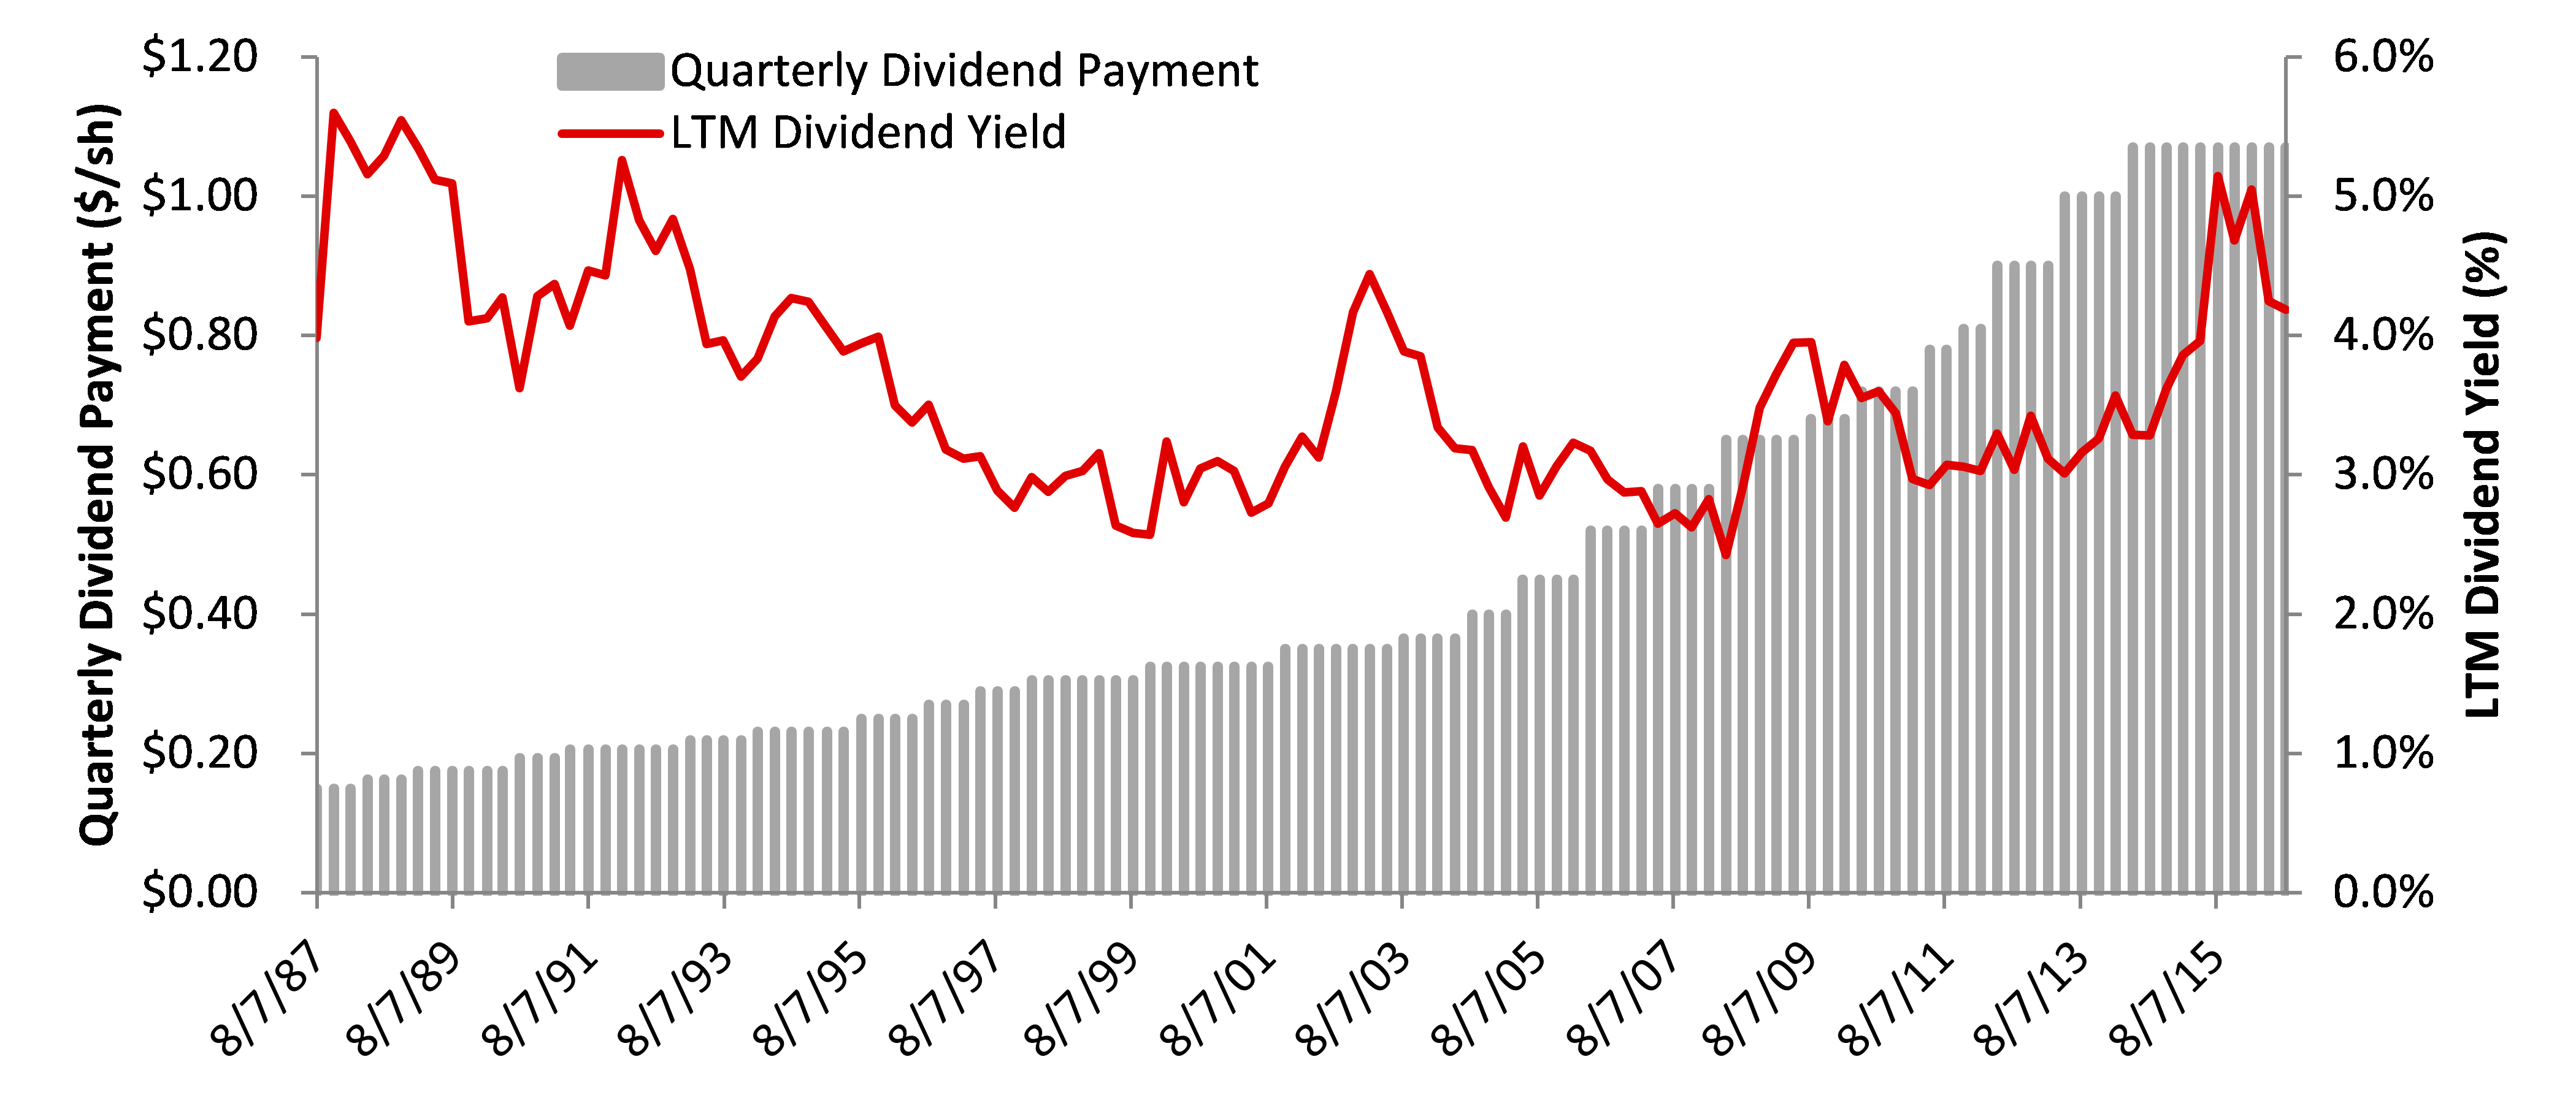 Quarterly Chevron Dividend History